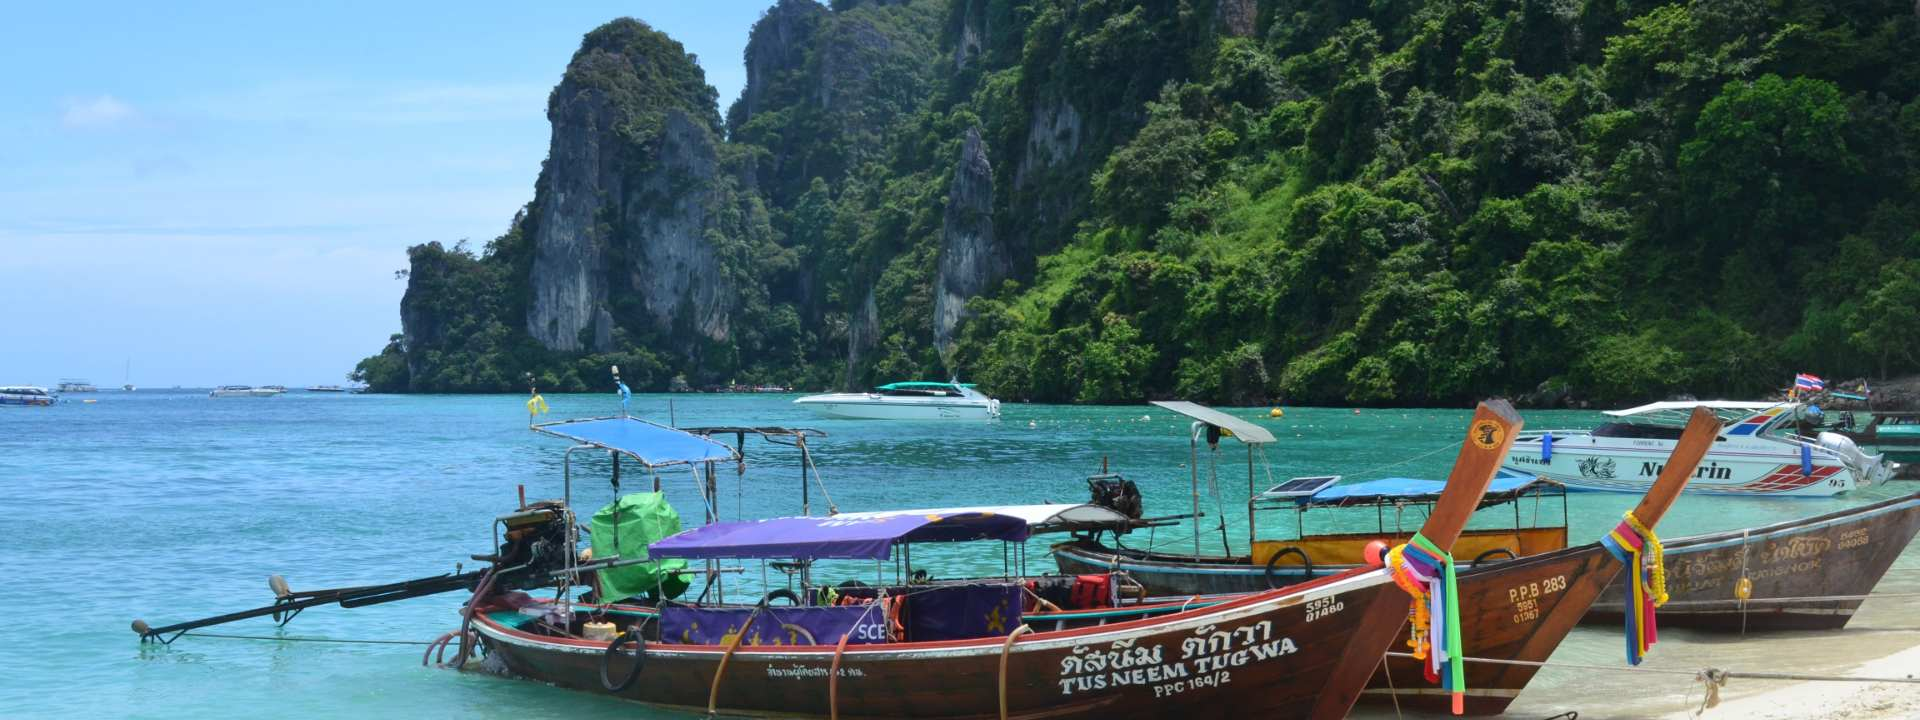 Treasures of Southeast Asia -Thailand Vietnam Cambodia Tour 4 weeks